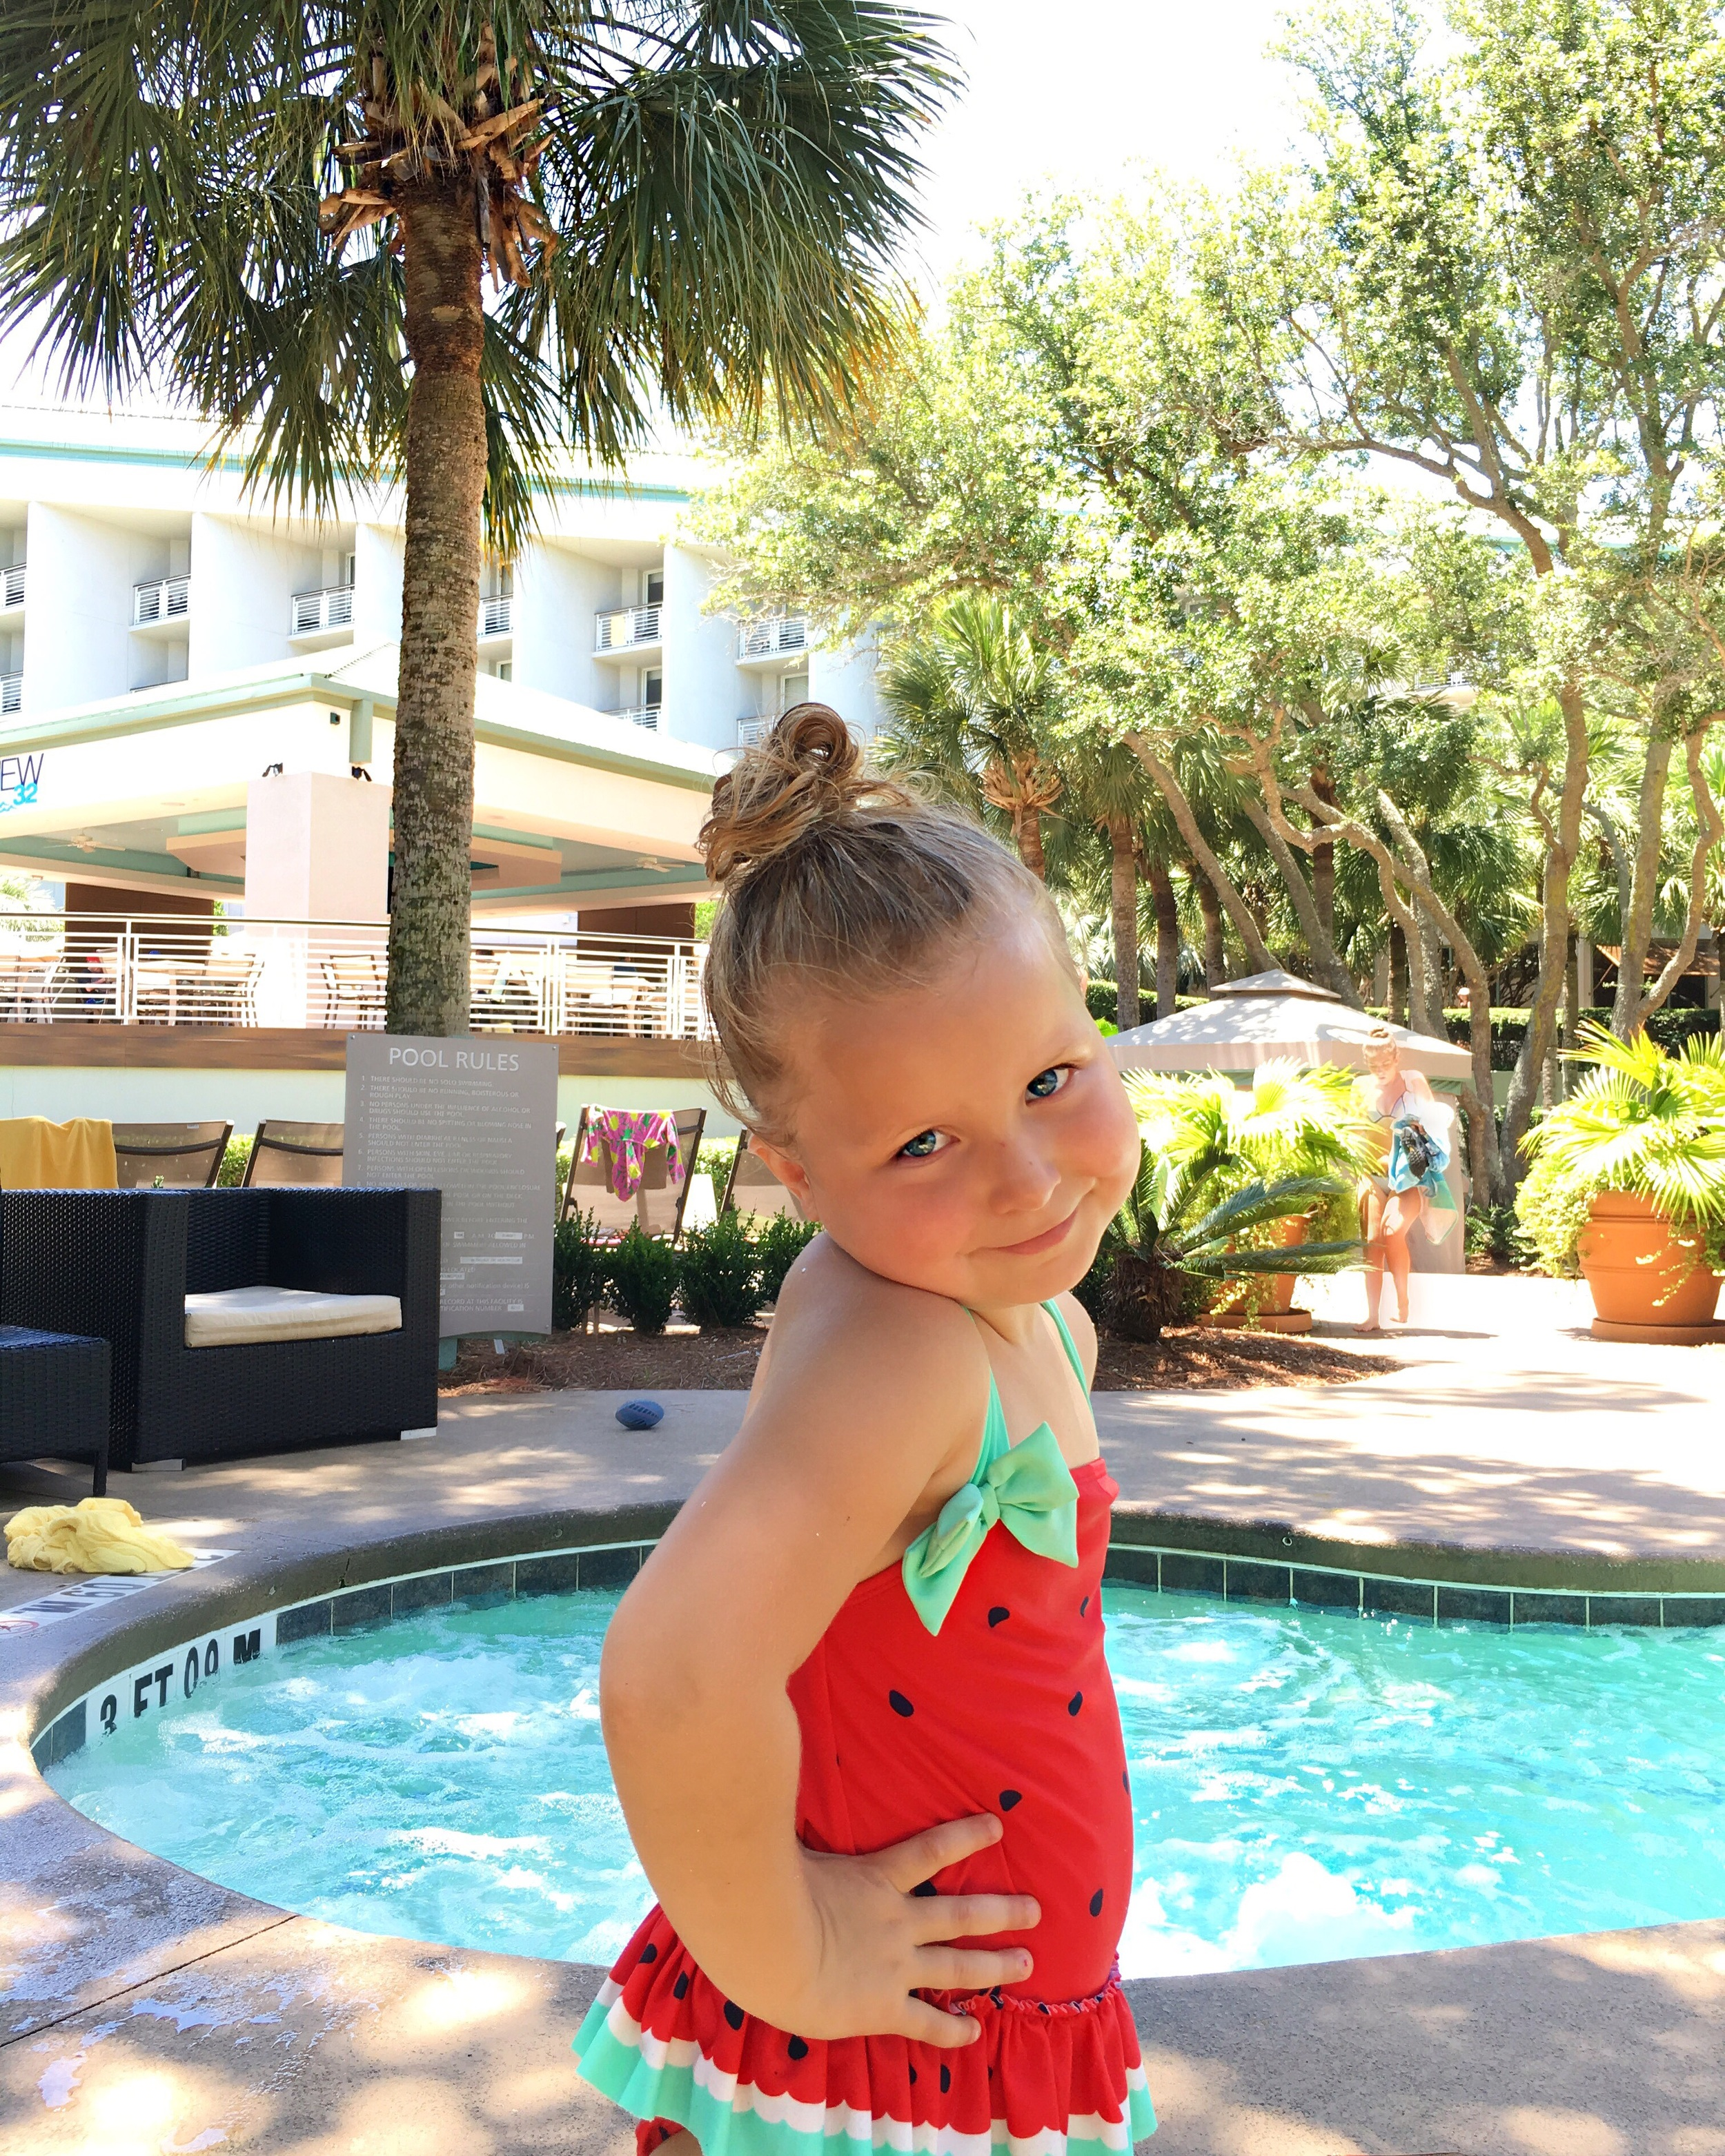 She took full advantage of all the pools and hot tub! Look at that smile!